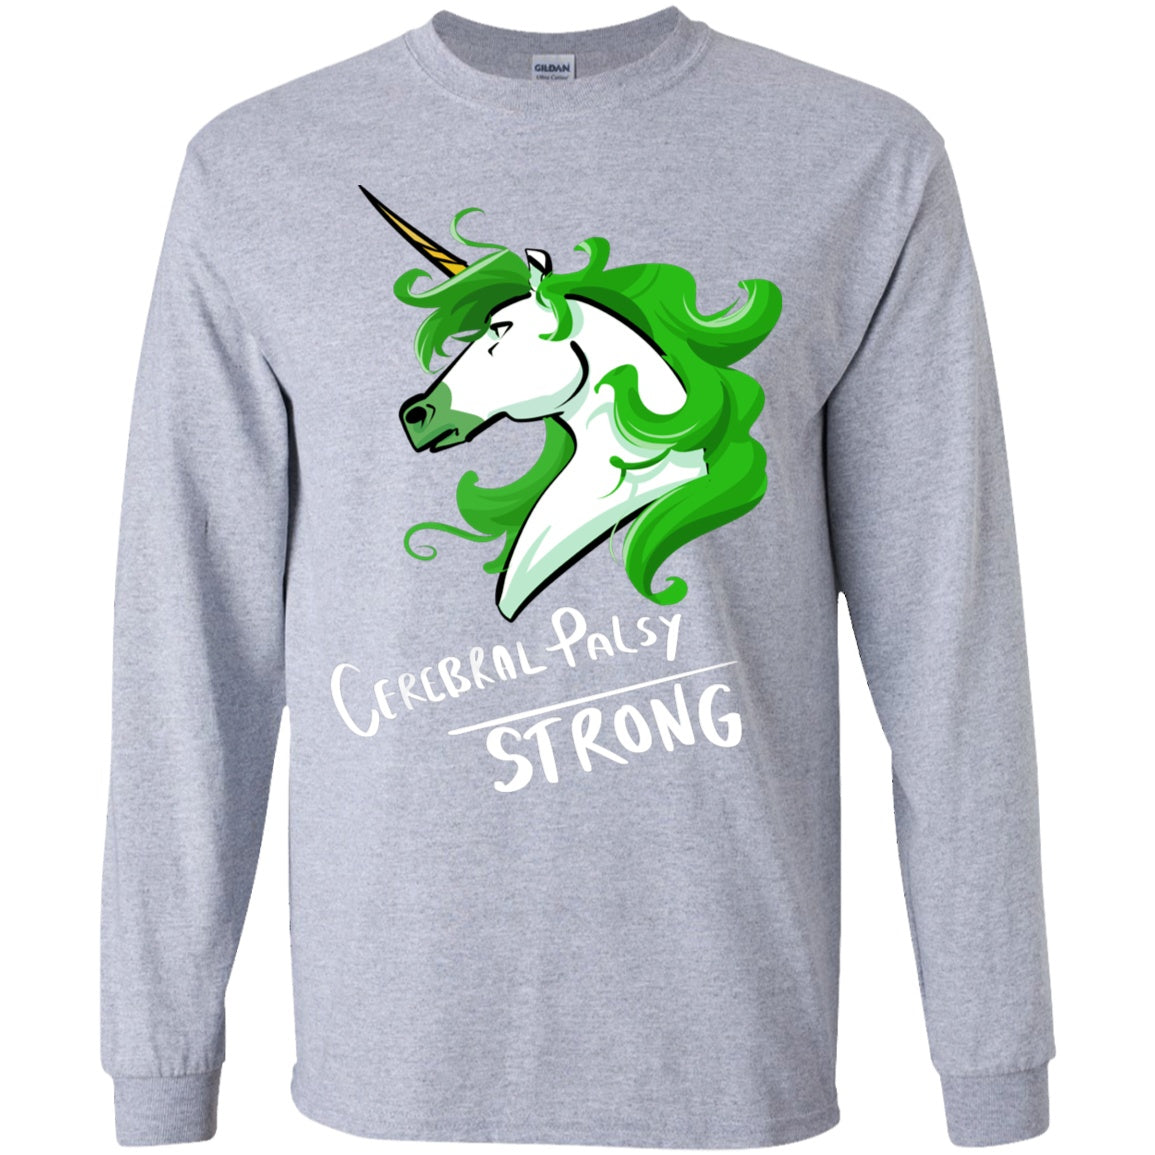 Cerebral Palsy Strong Unicorn Youth Long Sleeve Unisex - The Unchargeables